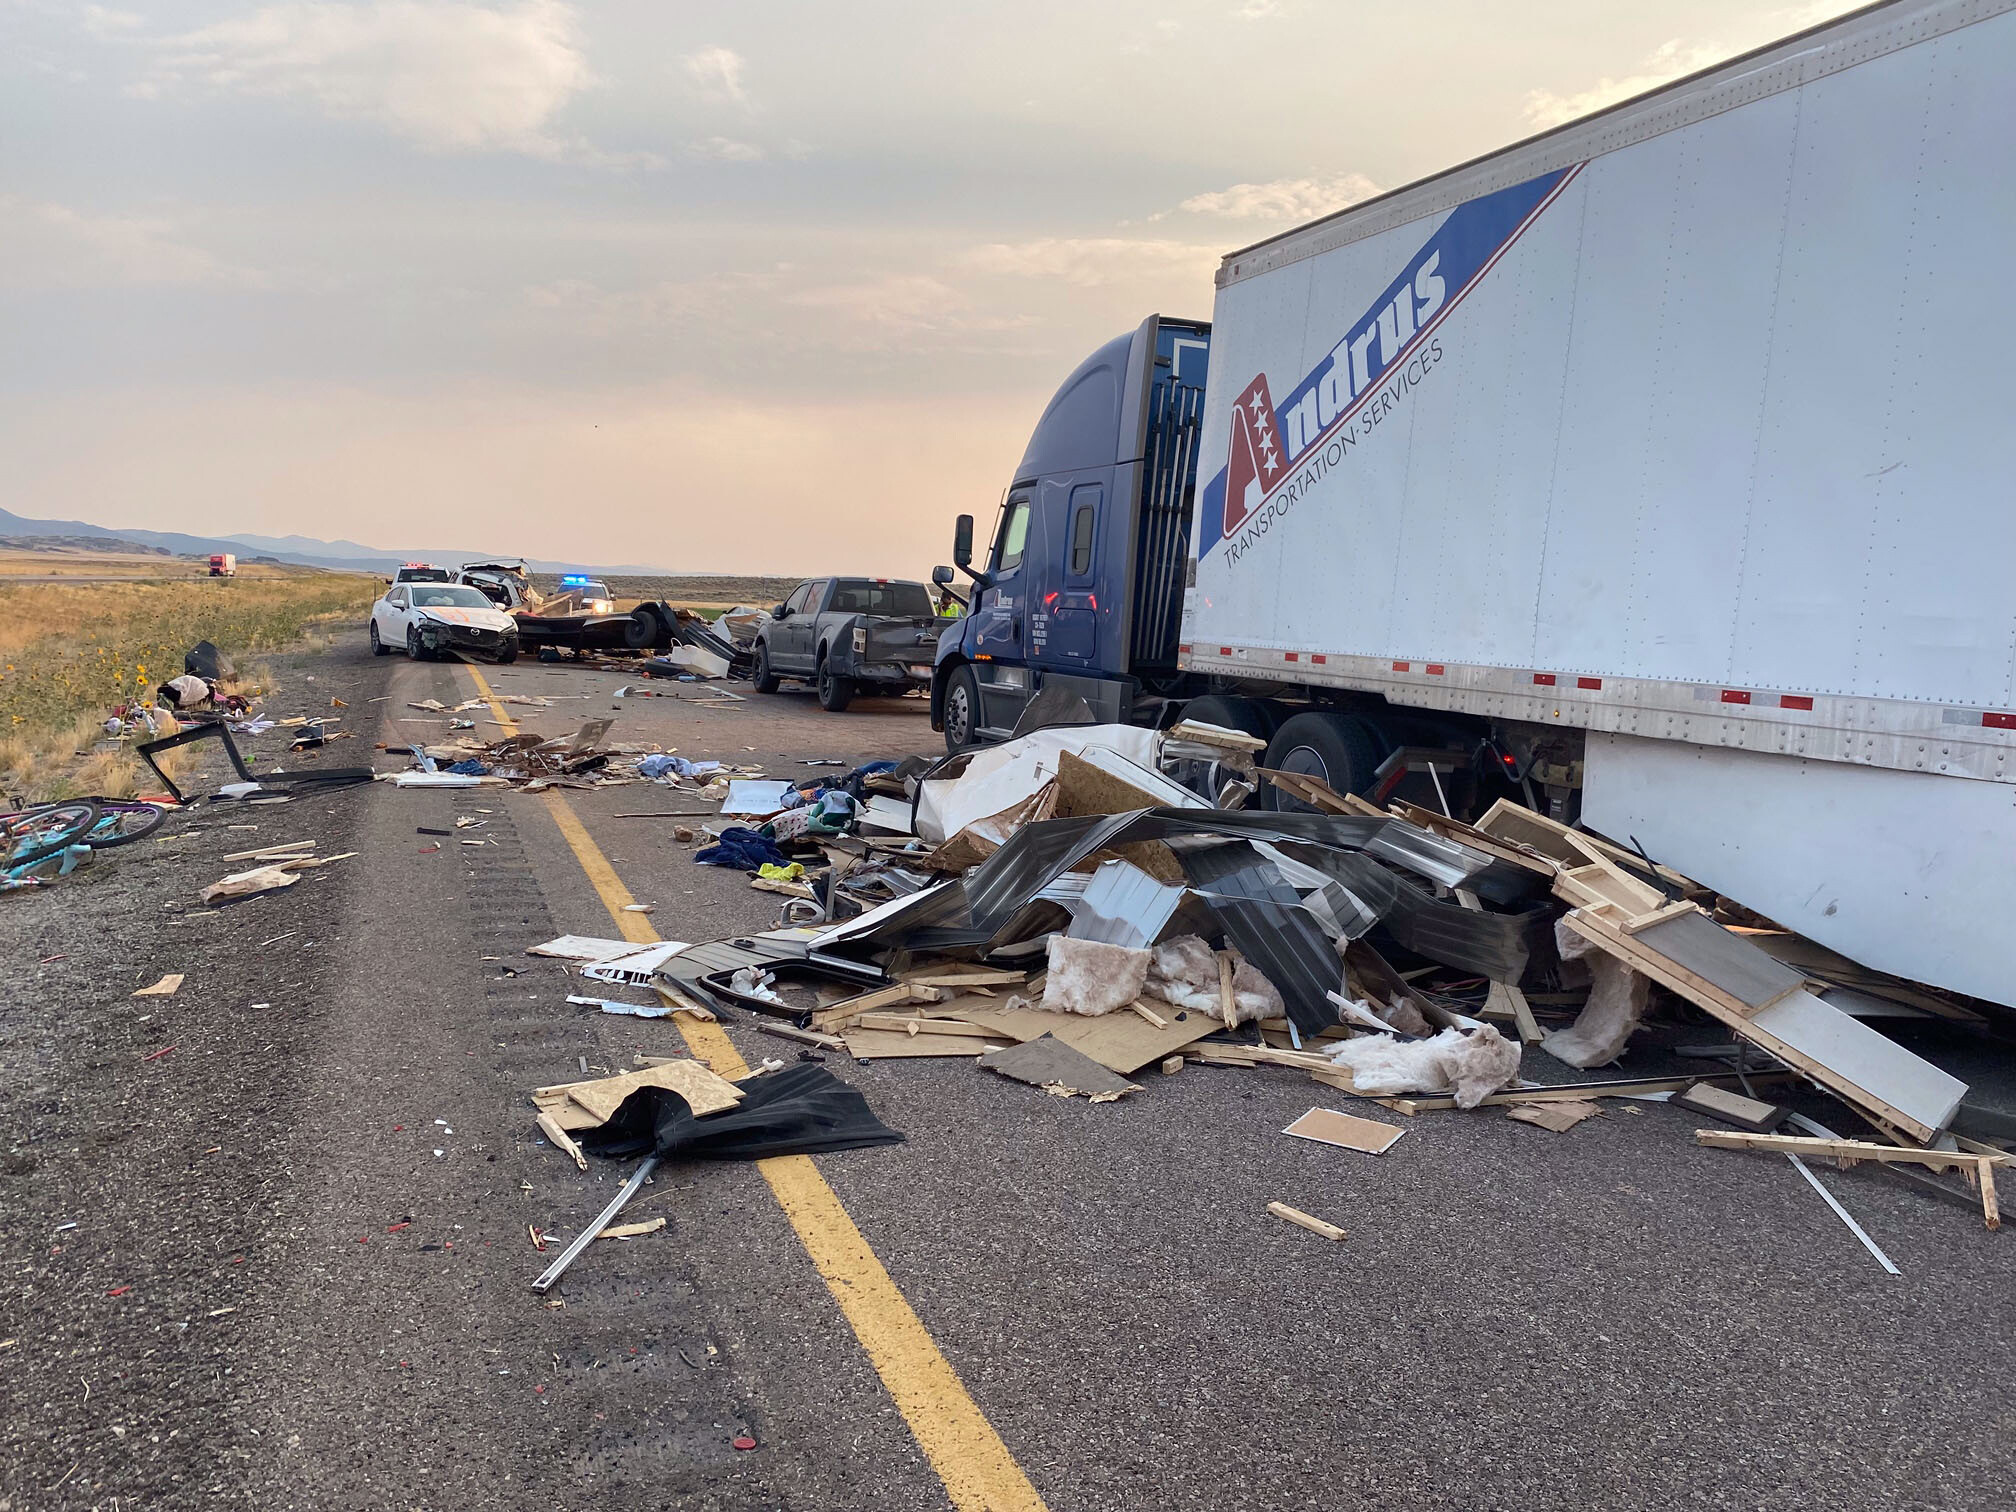 7 people are dead and several more injured after sandstorm leads to 20 vehicle crash in Utah